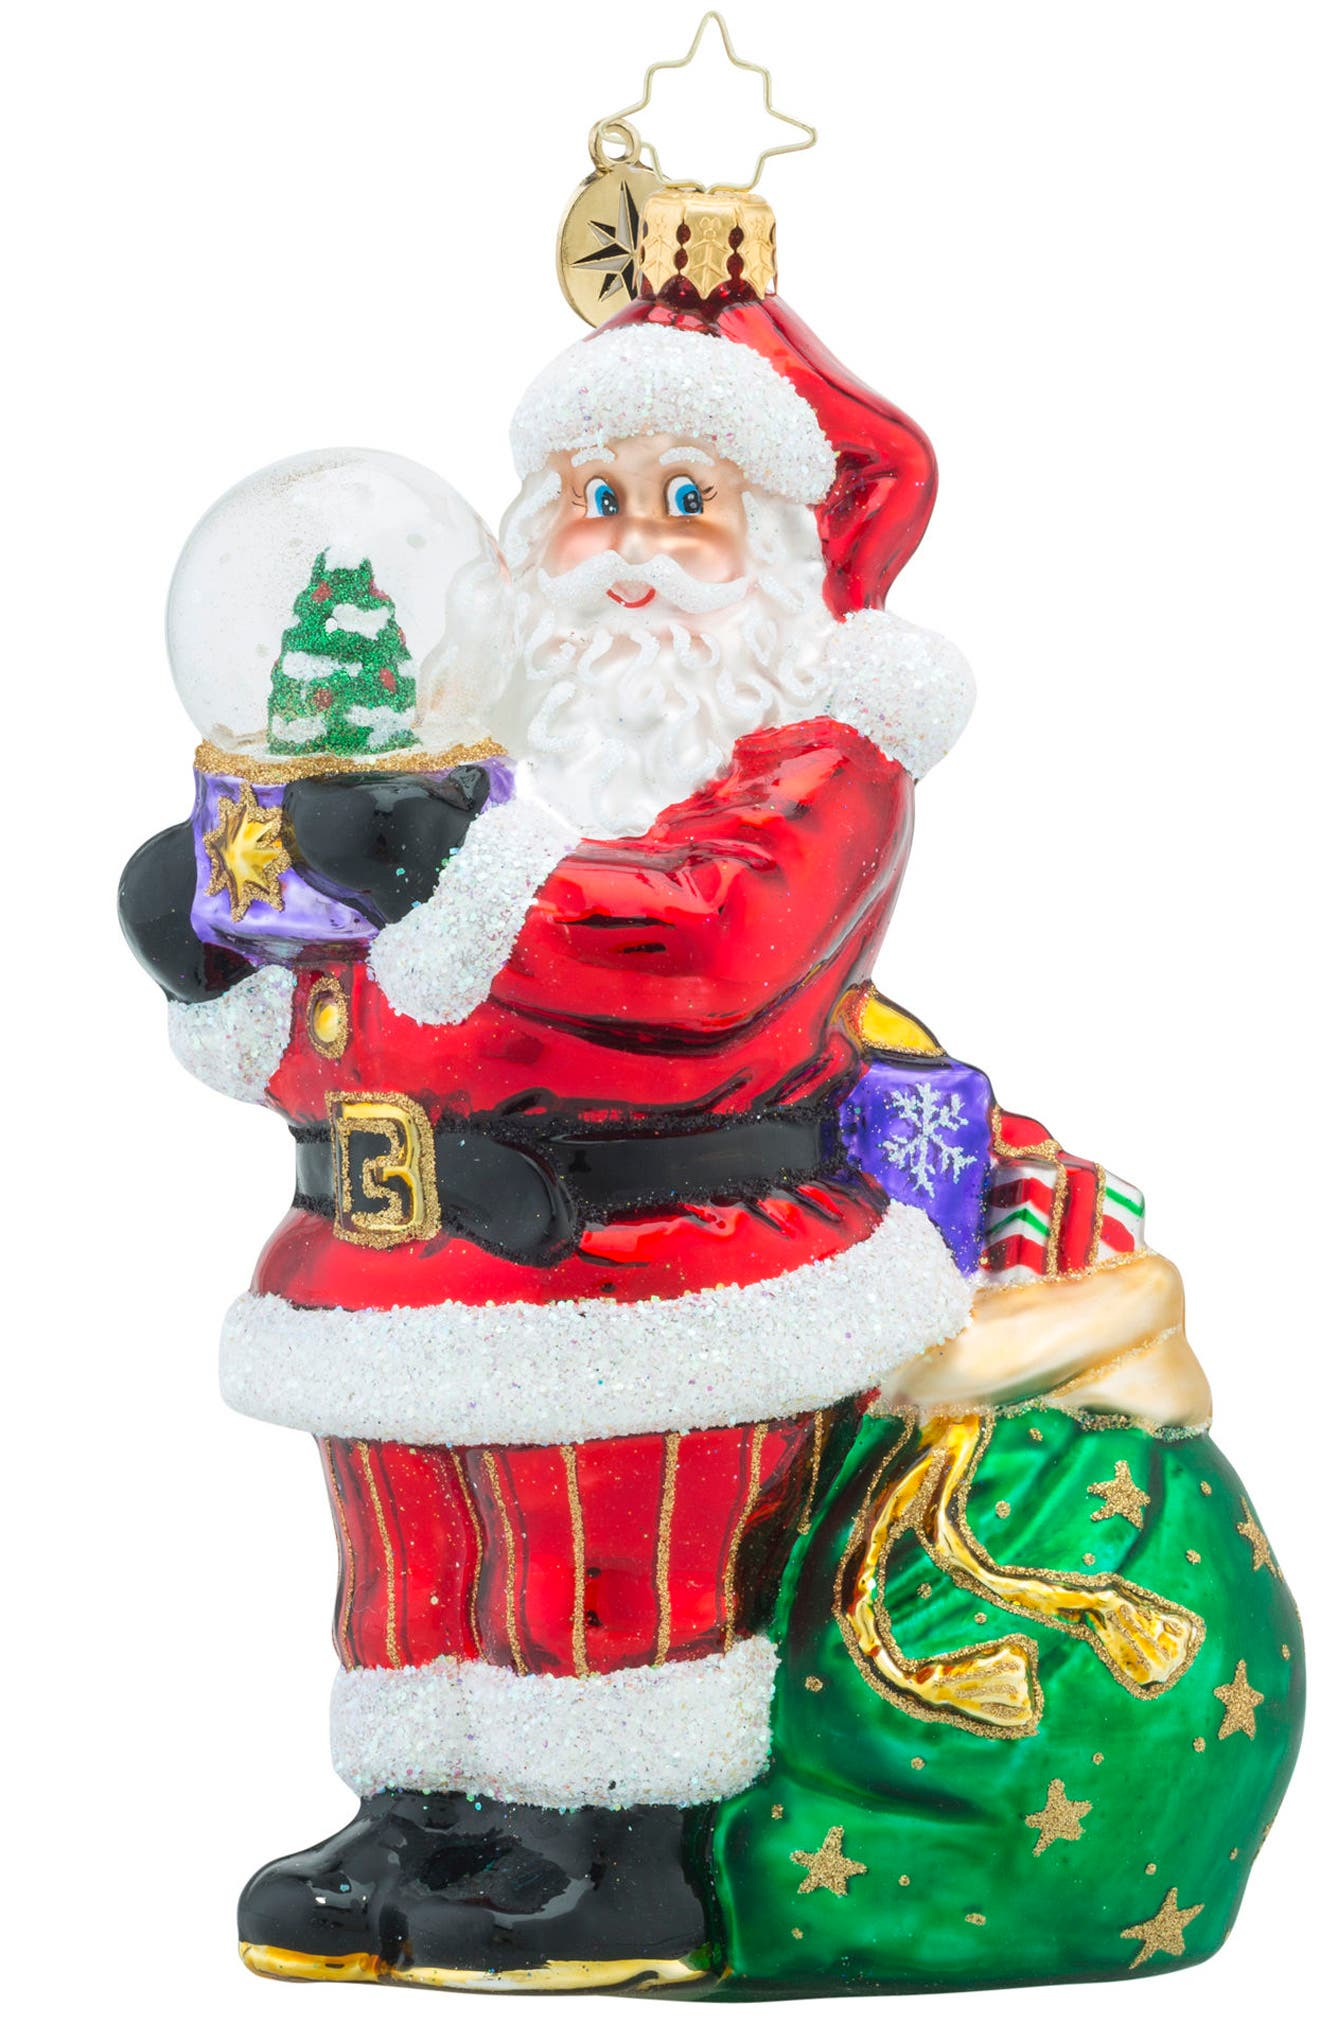 Christopher Radko Winter Land Santa Claus Ornament